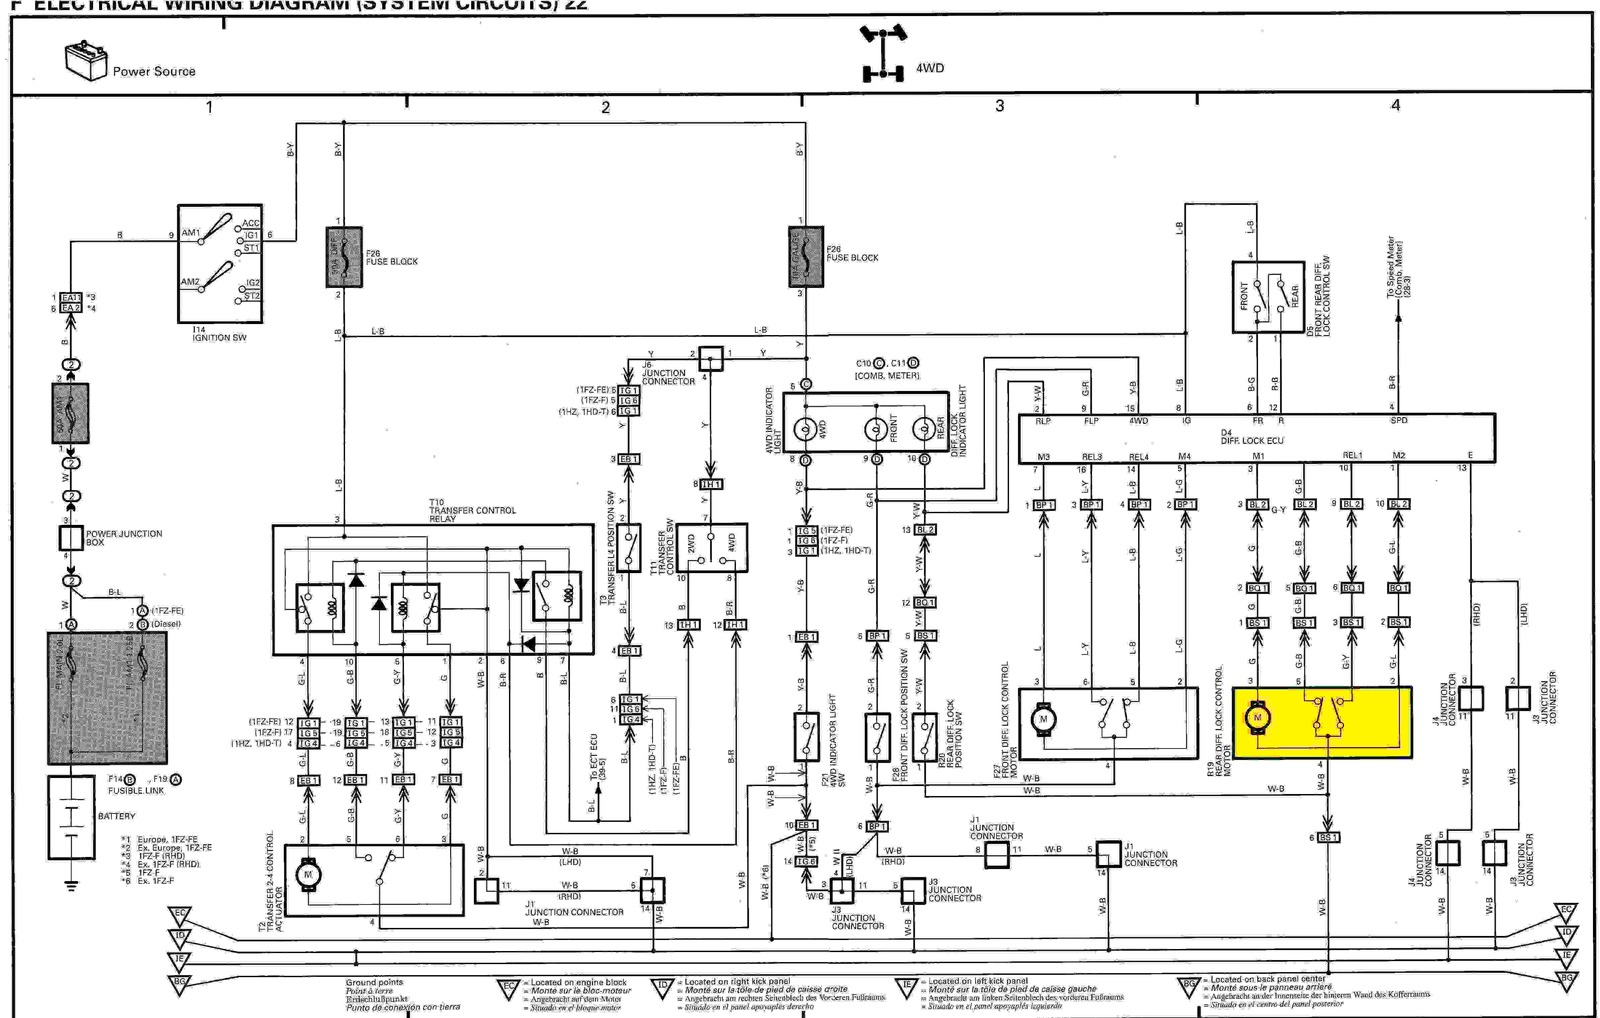 1hd fte wiring diagram toyota landcruiser 80 series wiring diagram toyota land cruiser wiring diagram at bakdesigns.co